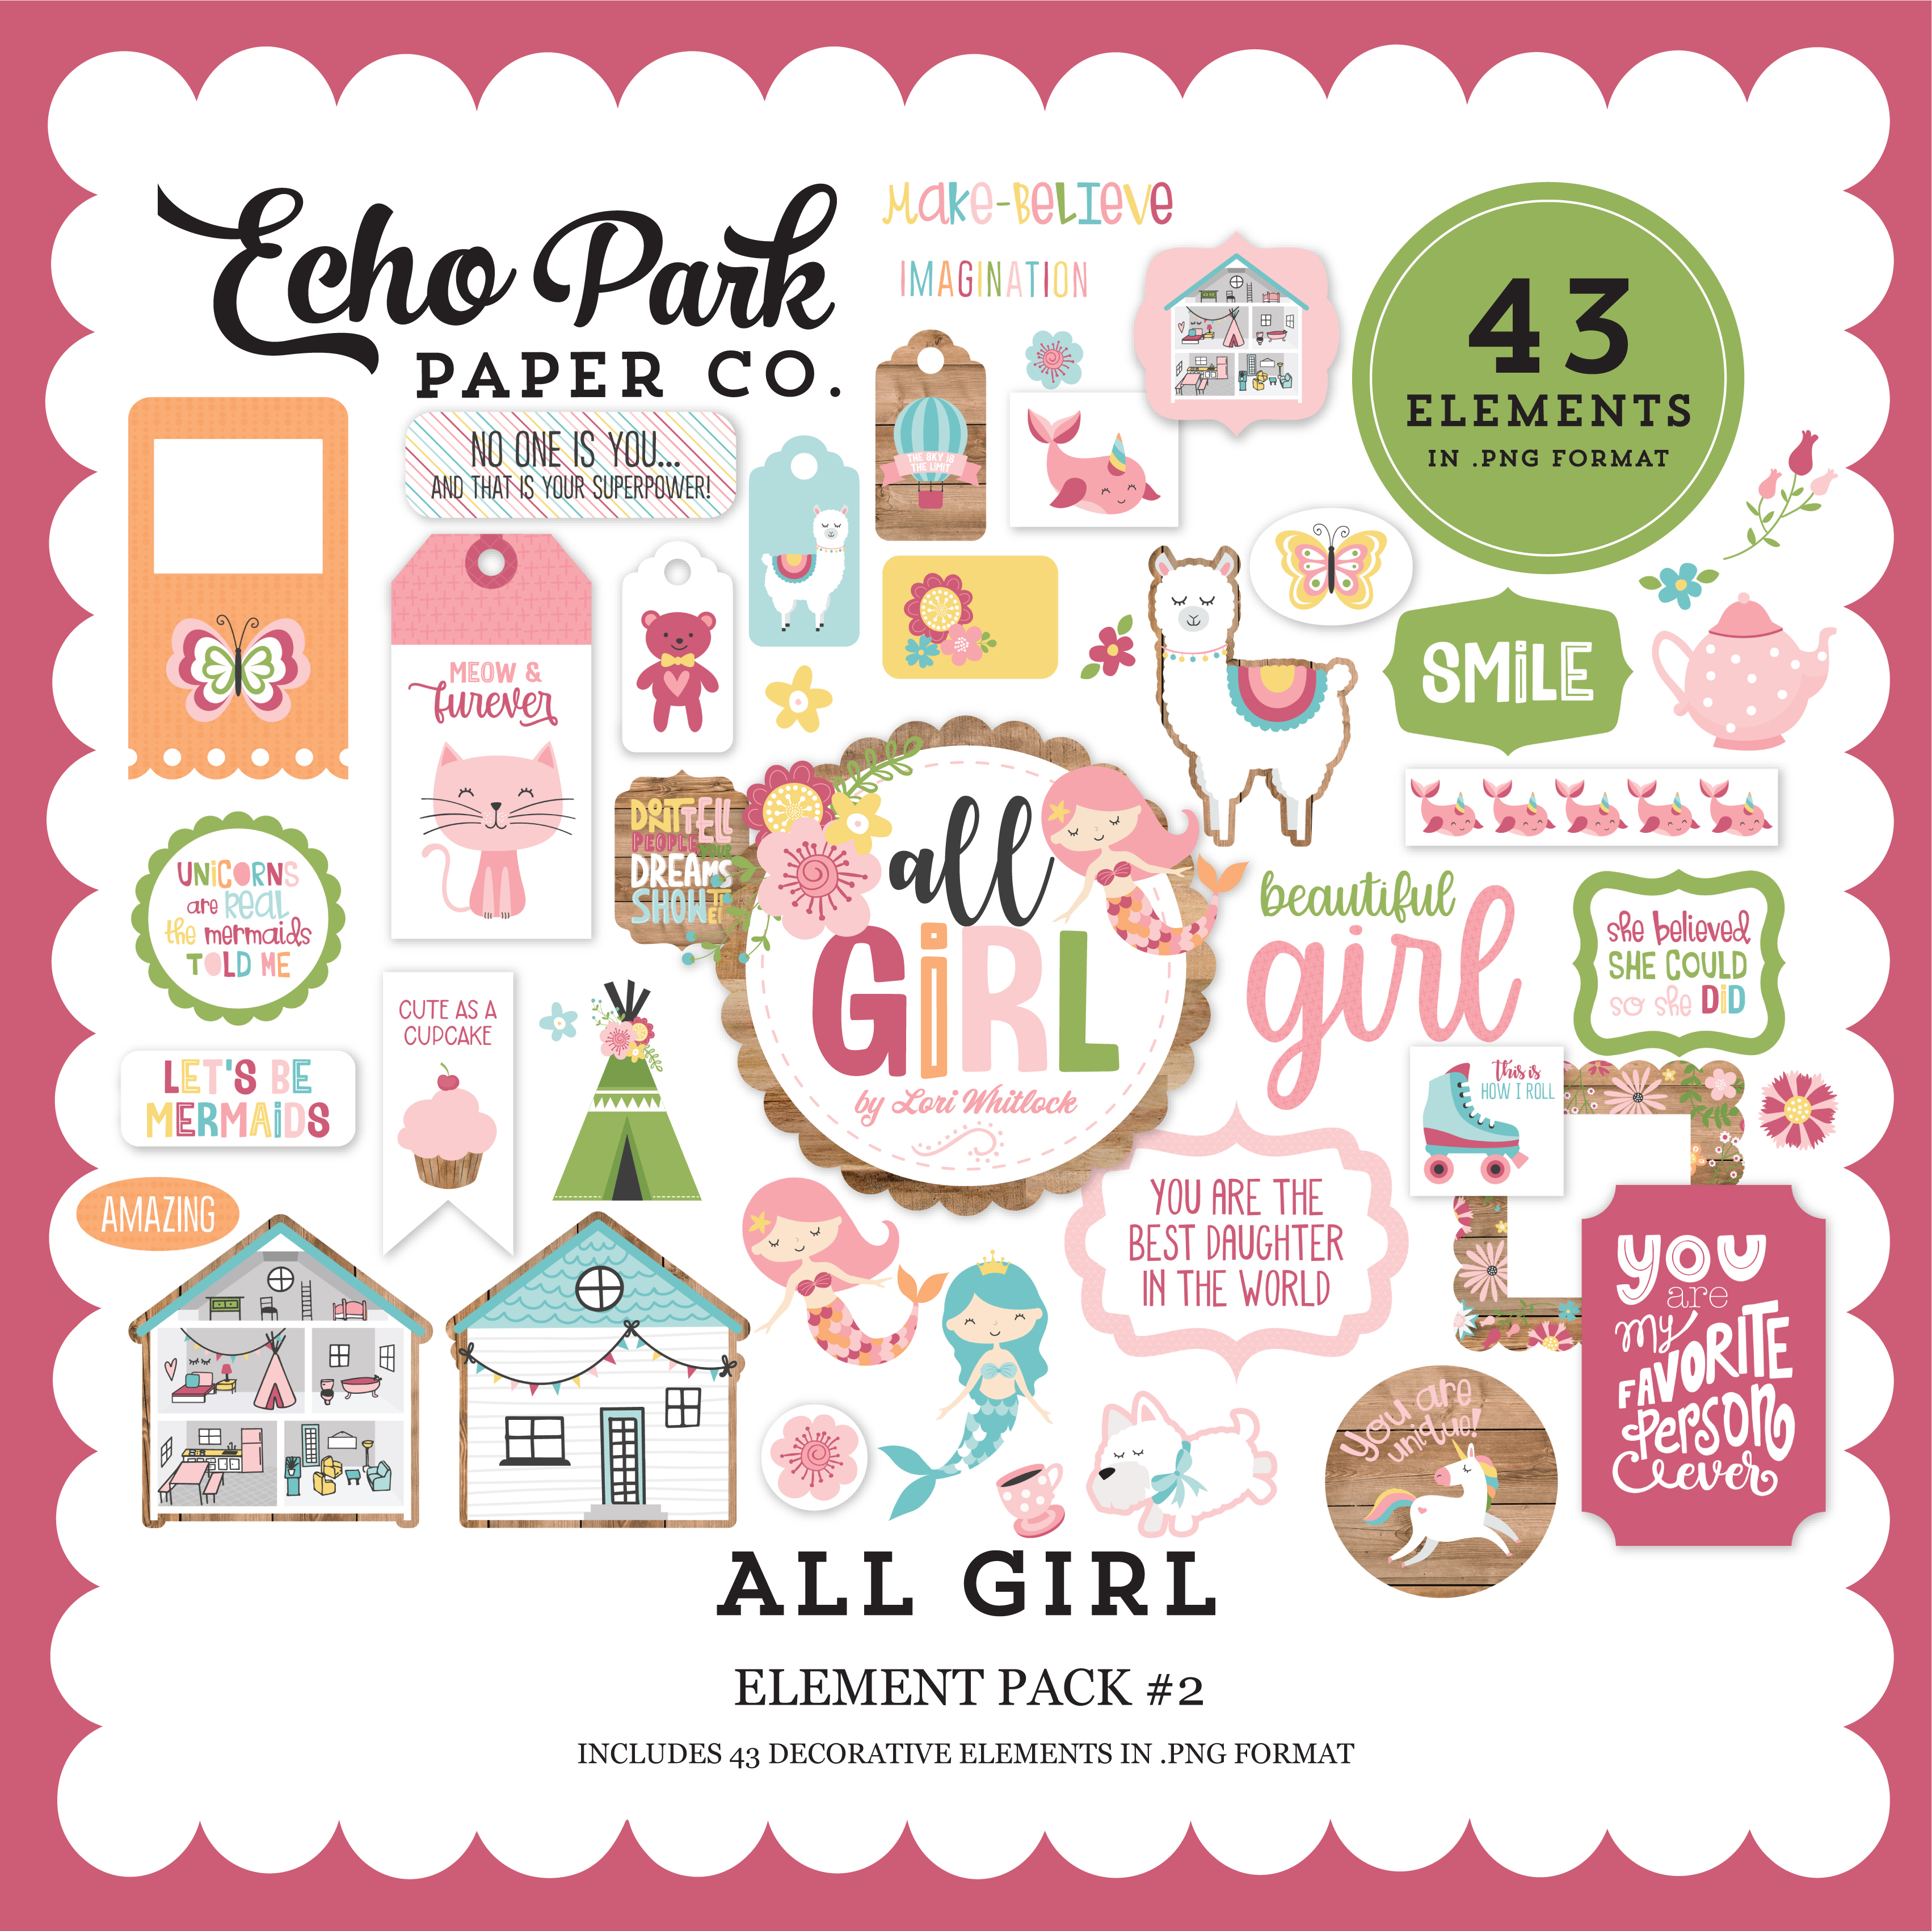 All Girl Element Pack #2